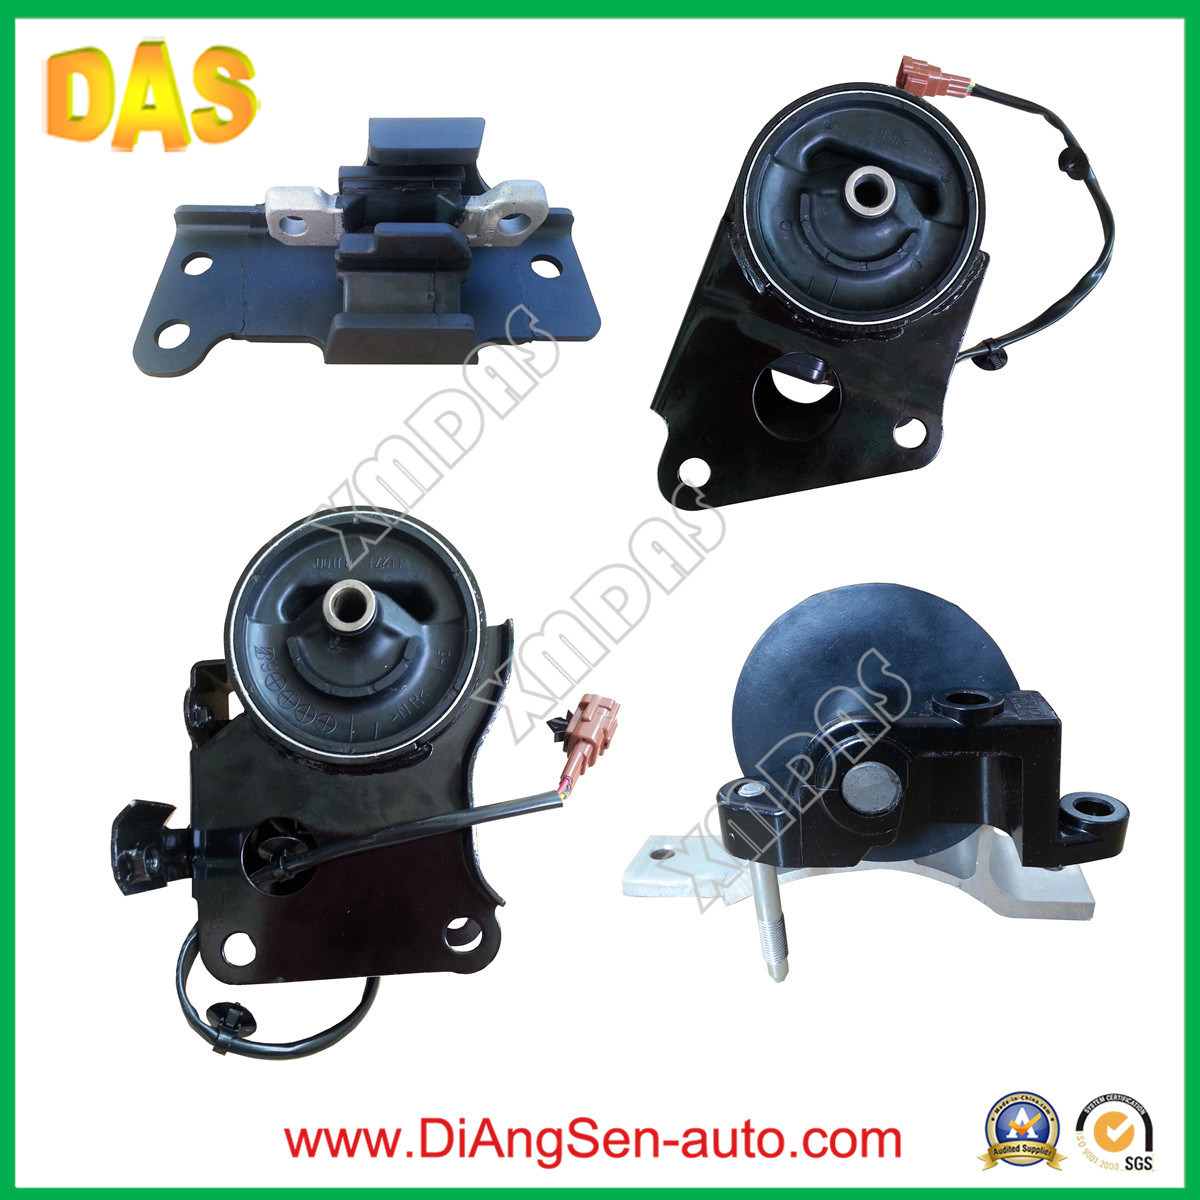 Transmission Motor Mount For Nissan Altima Murano Quest 3.5 L